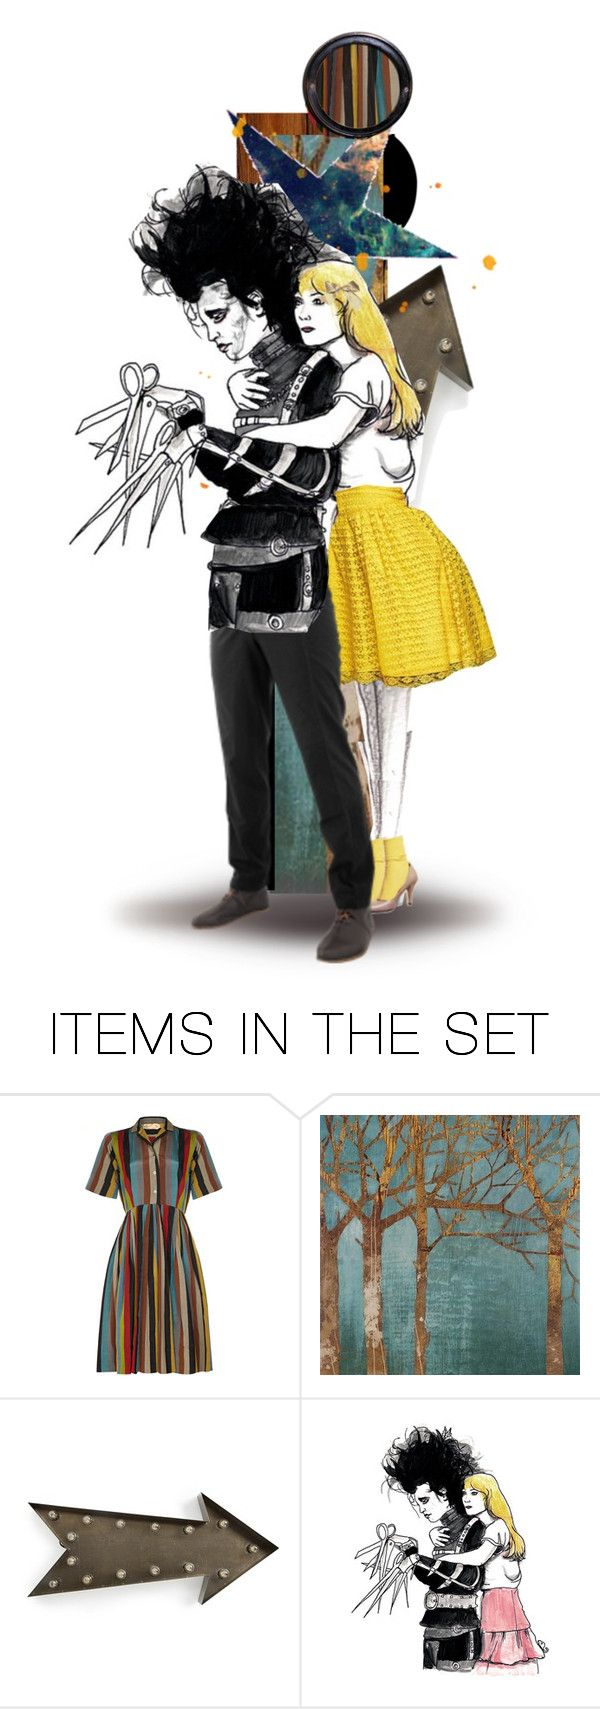 """""""You see, before he came down here, it never snowed. And afterwards, it did. If he weren't up there now... I don't think it would be snowing. Sometimes you can still catch me dancing in it."""" by twins005 ❤ liked on Polyvore featuring art and edwardscissorhands"""